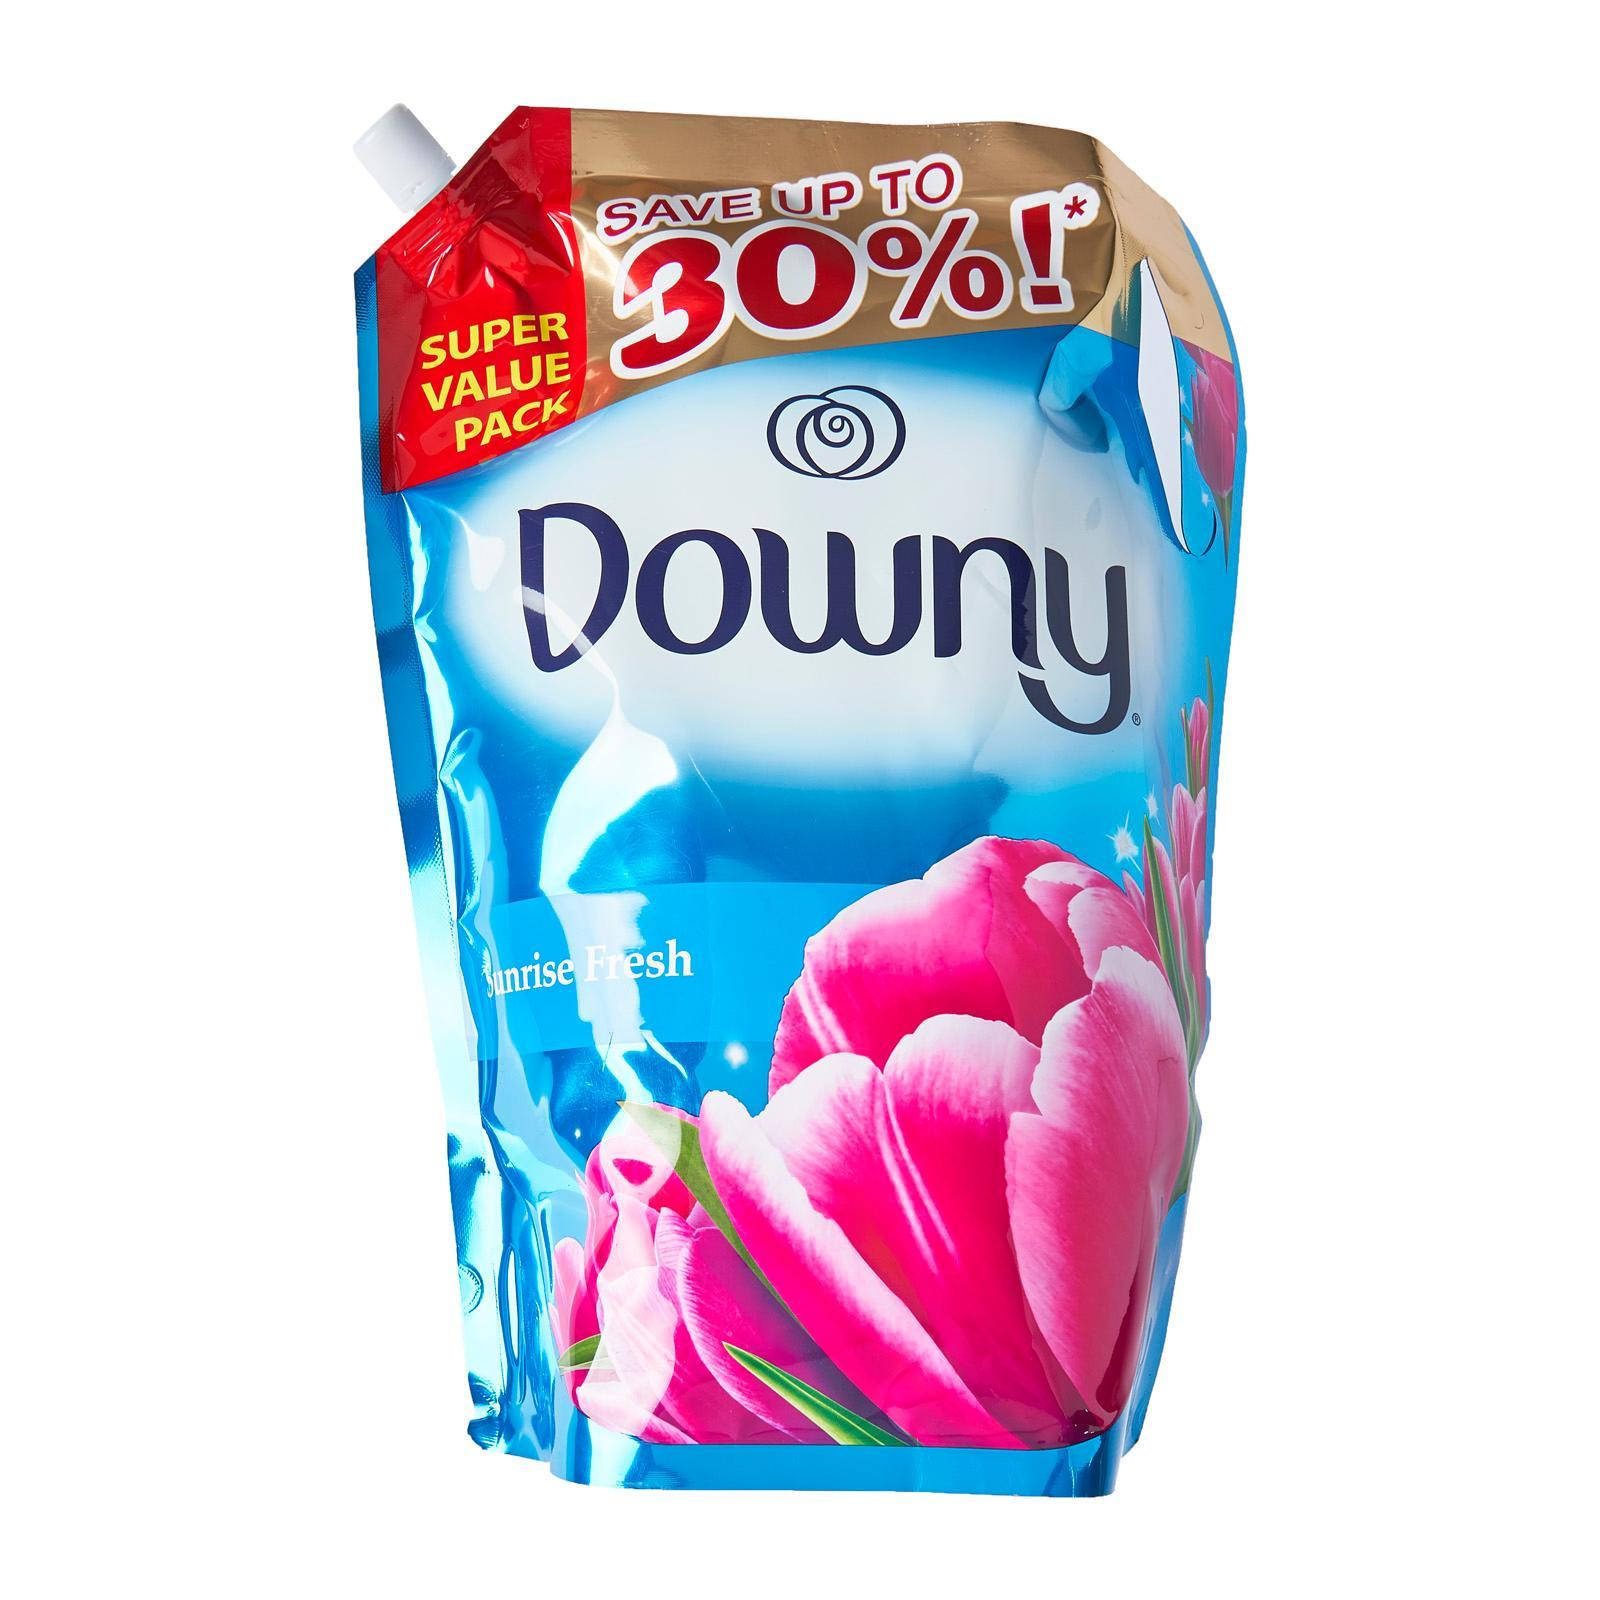 Downy Sunrise Fresh Concentrate Fabric Softener Refill 2.4L